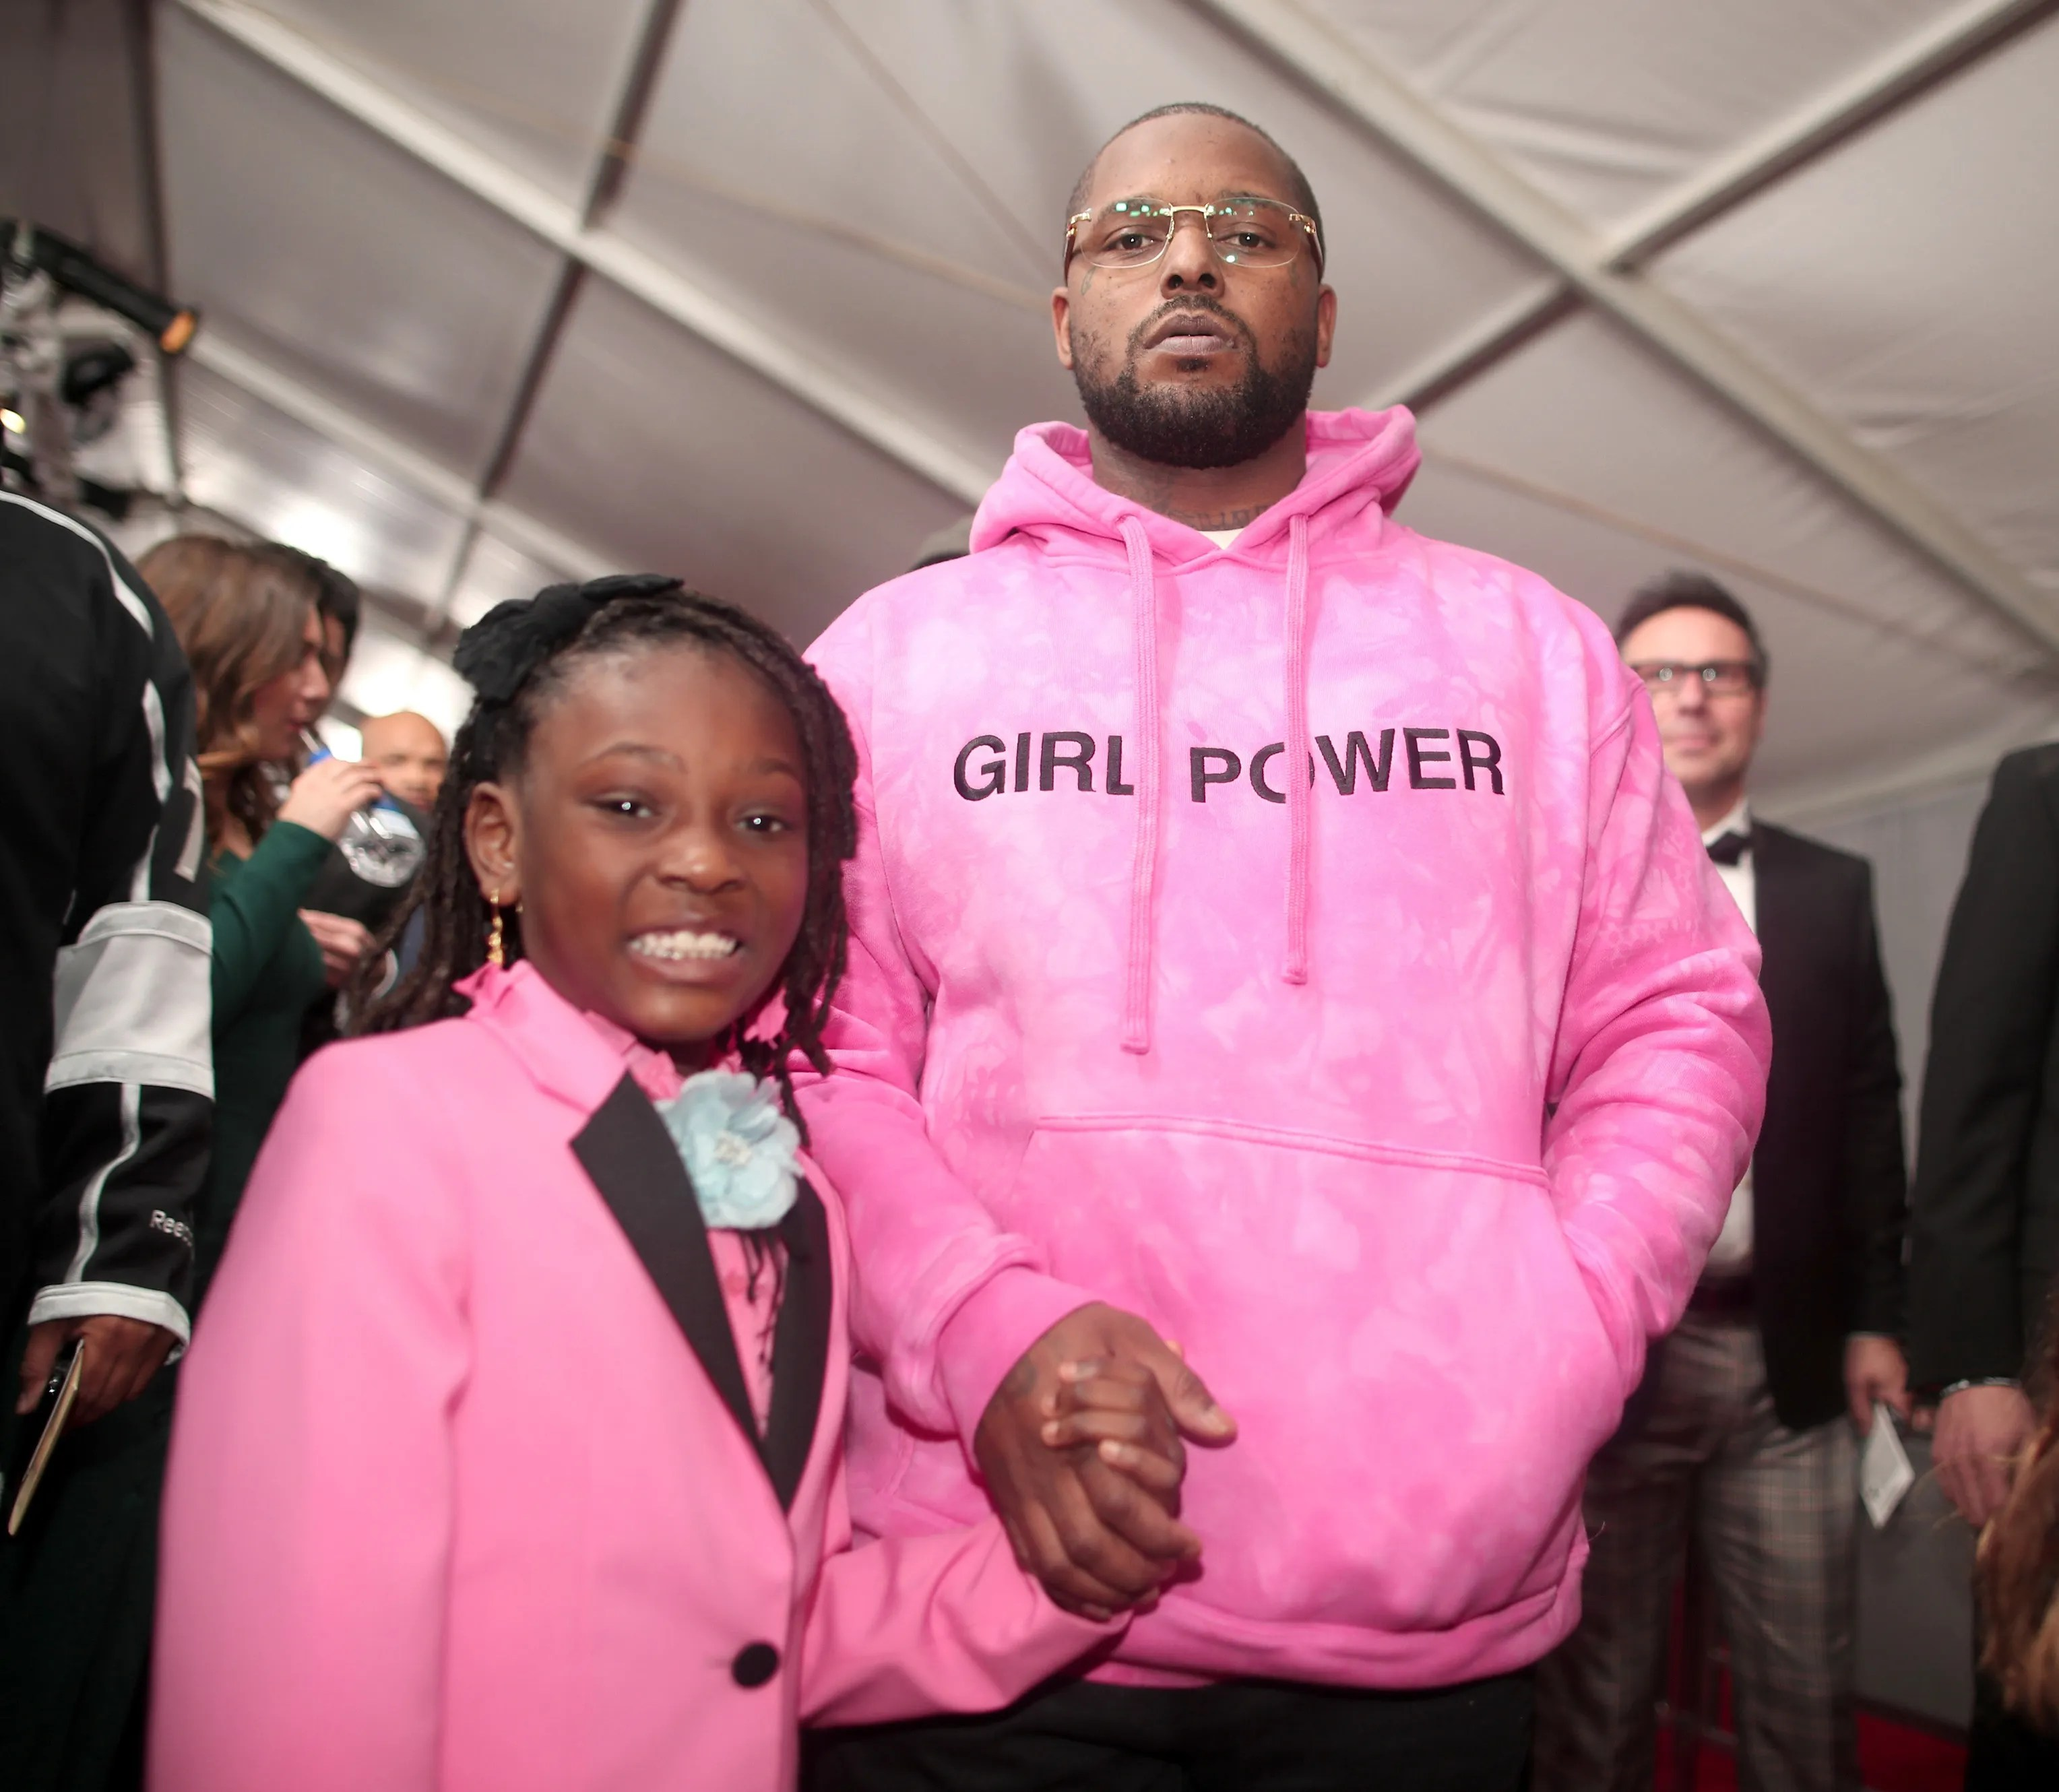 Best Girl-Power Moment: Schoolboy Q